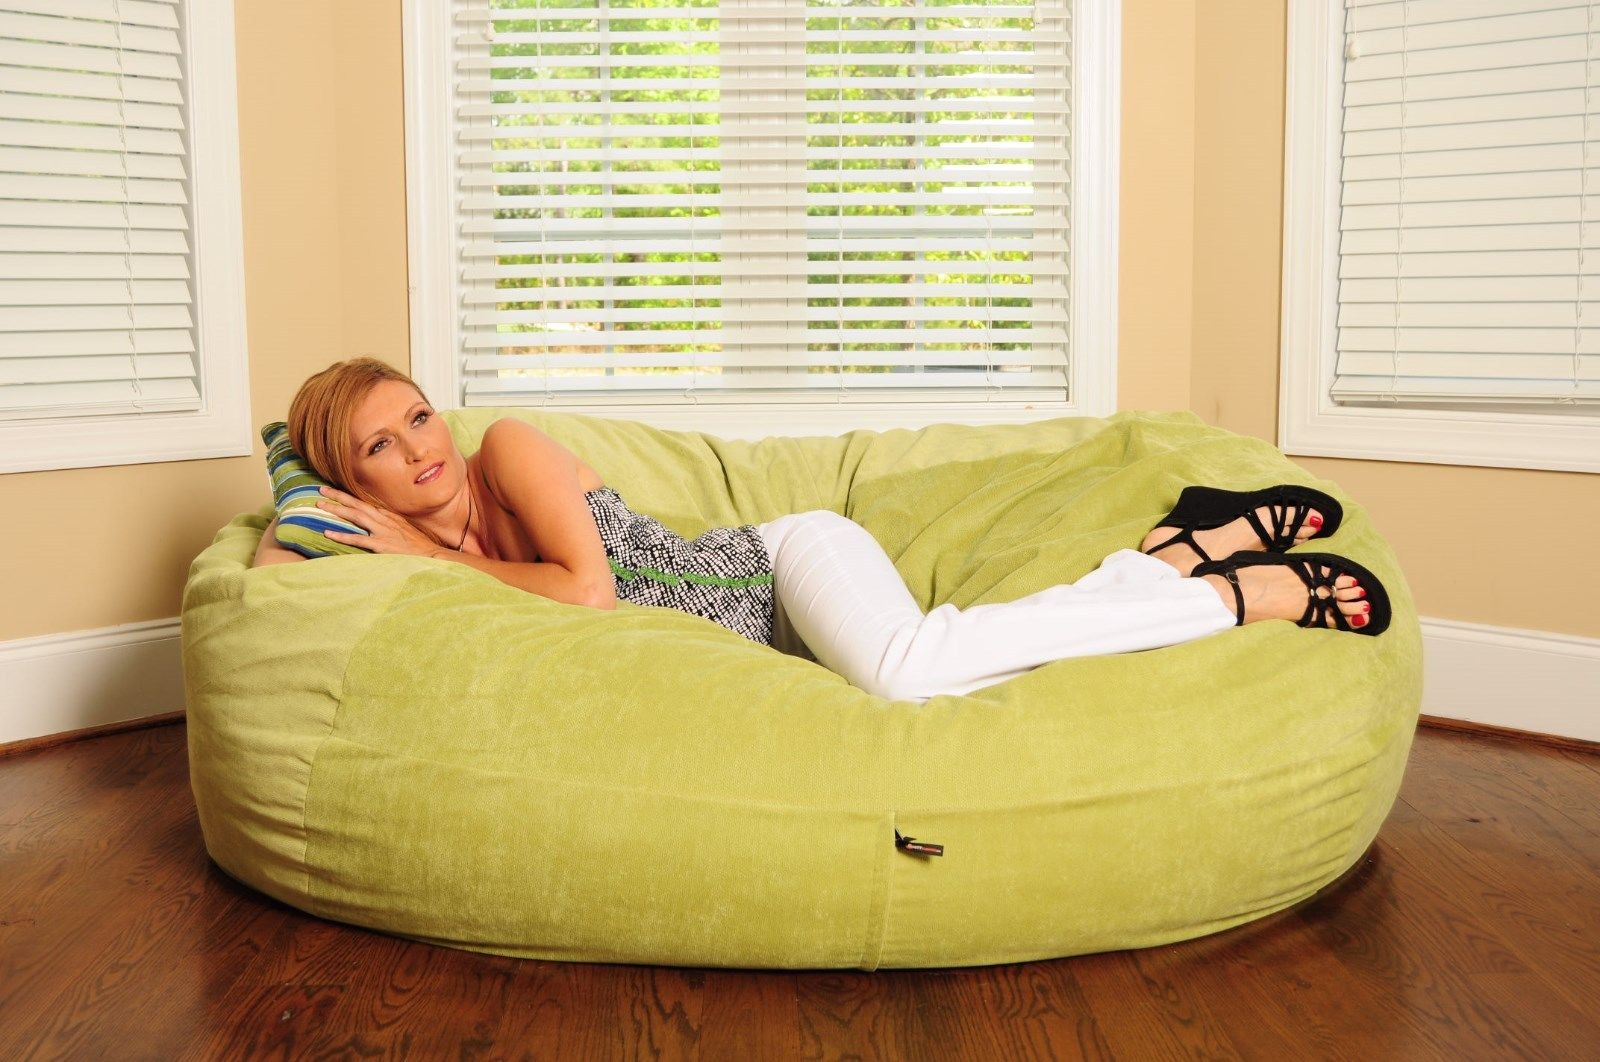 Best Bean Bag Chairs for Adults Ideas with Images : bean bag chairs for adults shapes from homedecorideas.uk size 1600 x 1062 jpeg 223kB